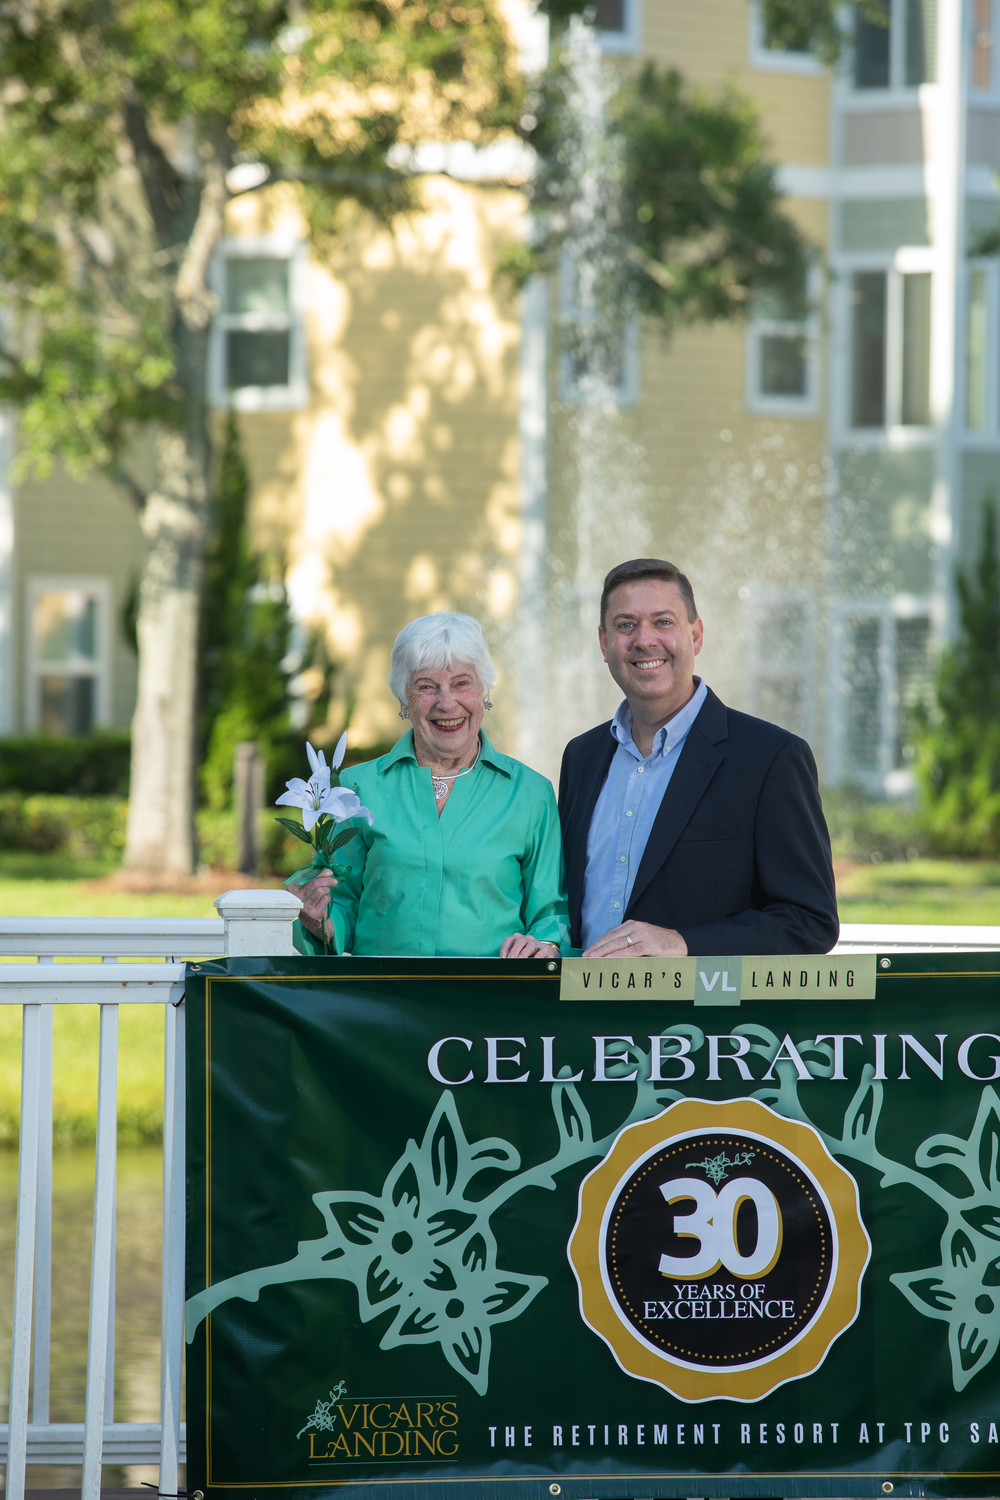 Longtime Vicar's Landing resident Cynthia Prince and Vicar's Landing CEO Bruce Jones stand in front of a banner celebrating the retirement community's 30th anniversary.